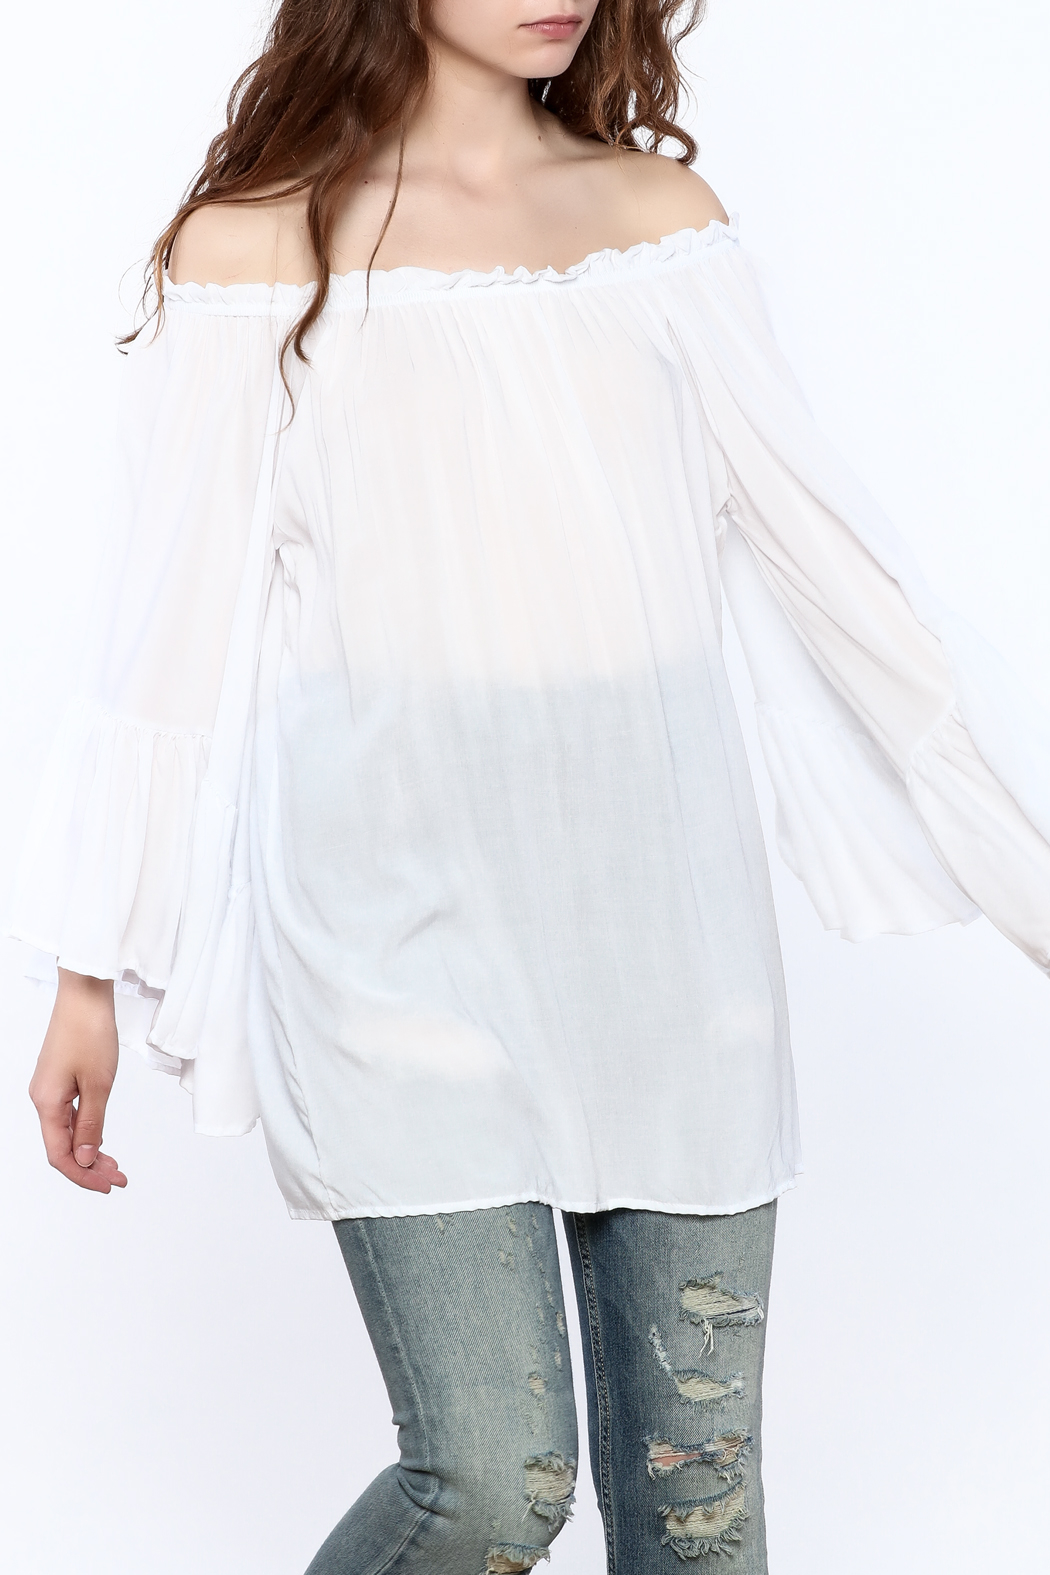 Elan Flowy White Tunic Top - Front Cropped Image